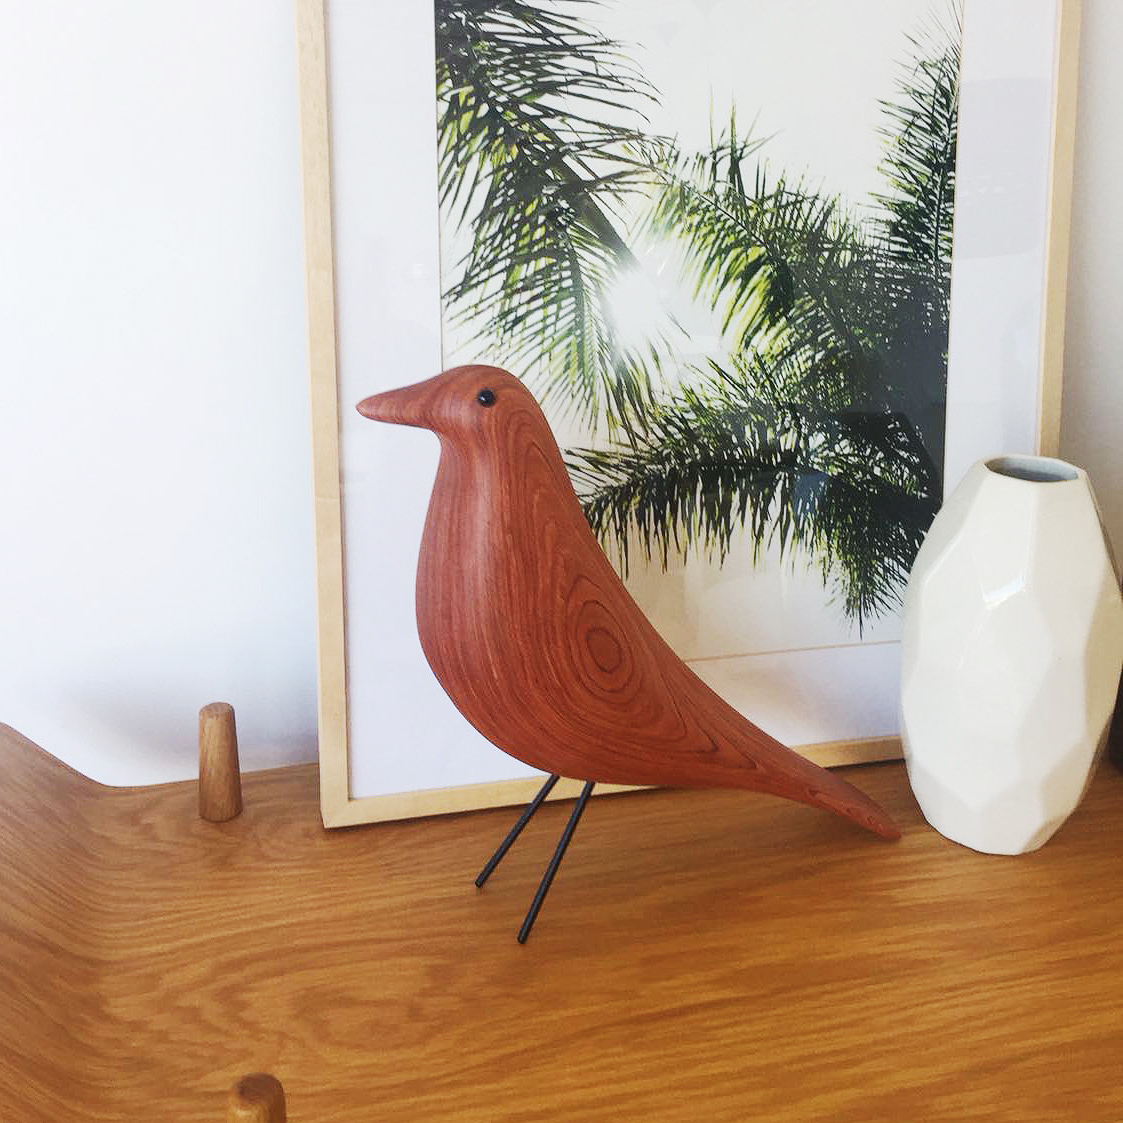 Eames House Bird Eames House Bird In Walnut Wood By Vitra